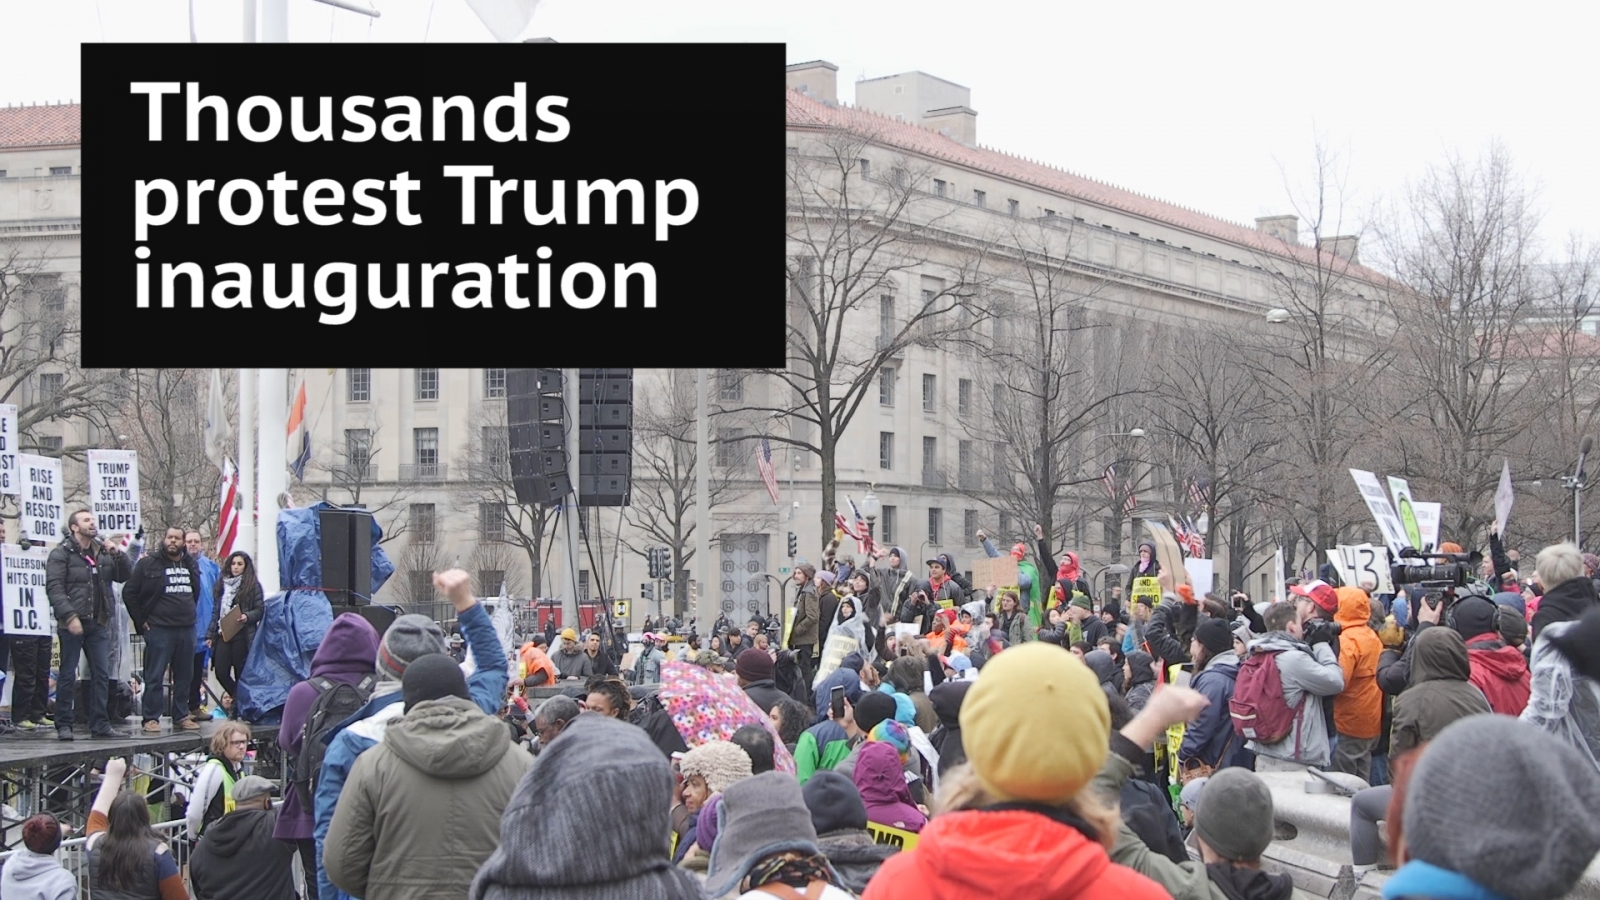 Thousands protest Donald Trump inauguration on streets of Washington DC